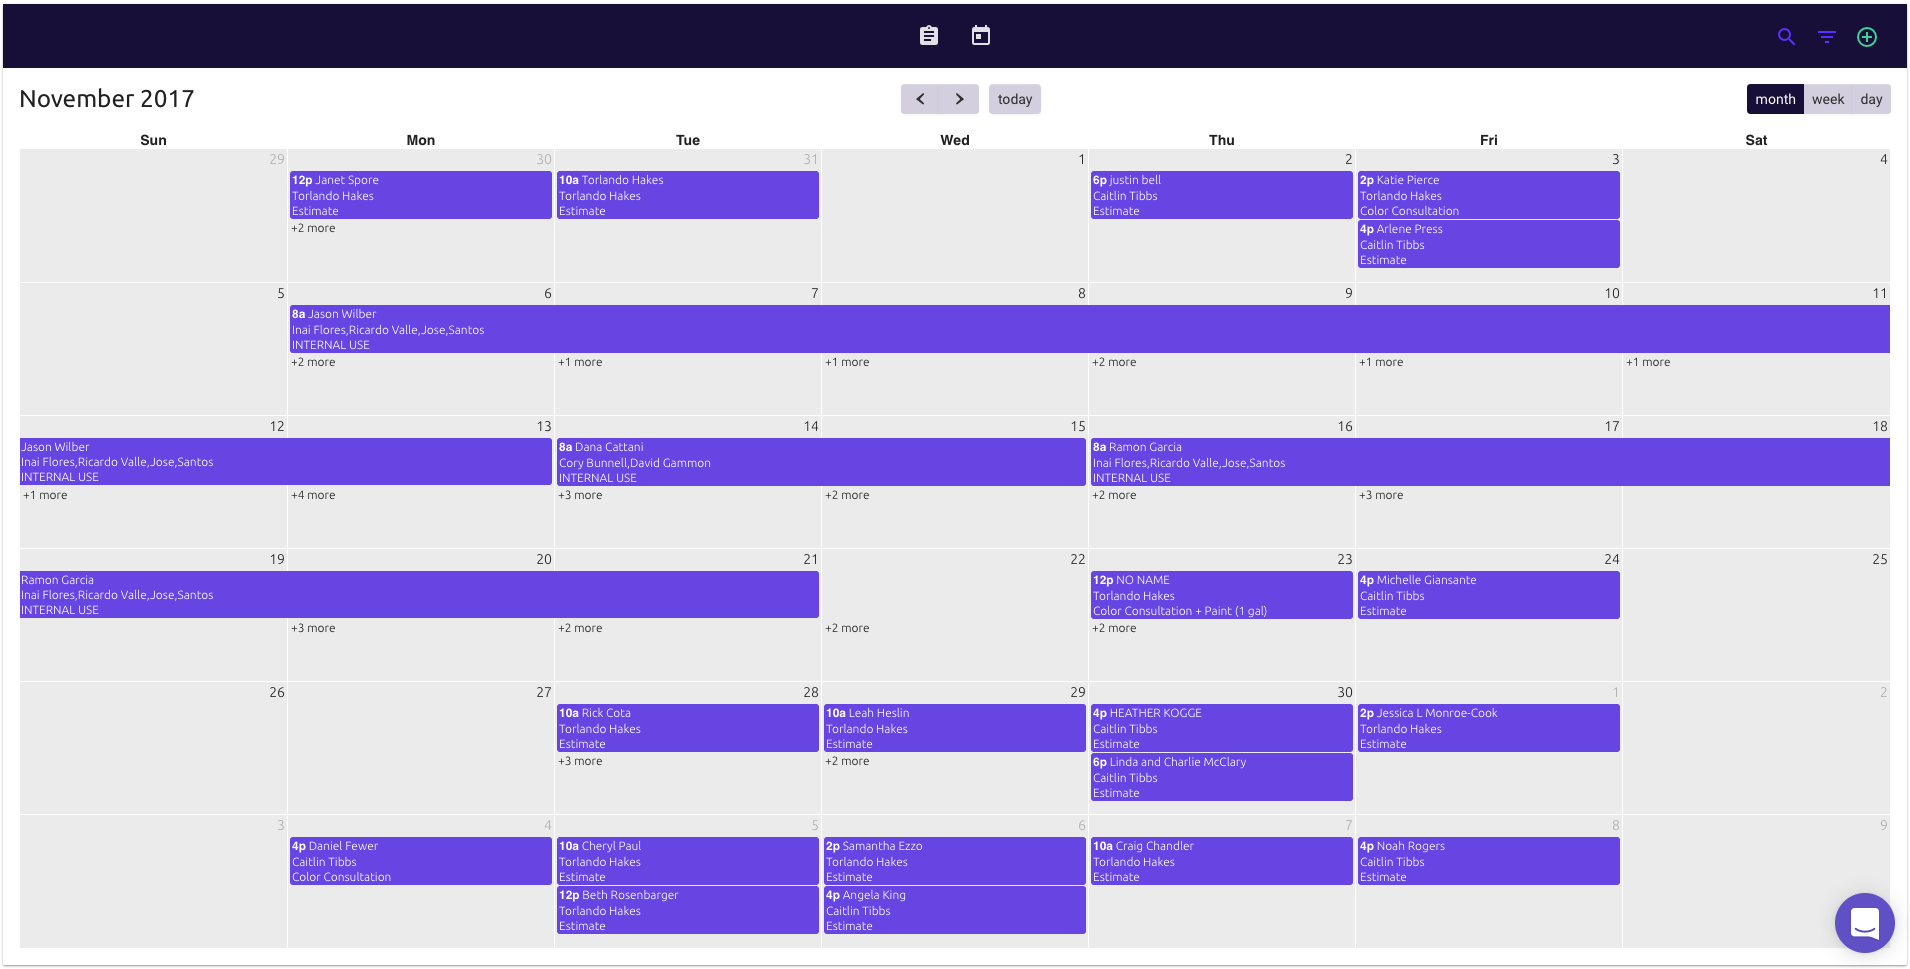 Assign &Track - Assign team members to specific jobs and keep track of them on the calendar. ColorBook can auto-assign team members to jobs as they come in. Adjust your schedule on the fly and even bill more hours.